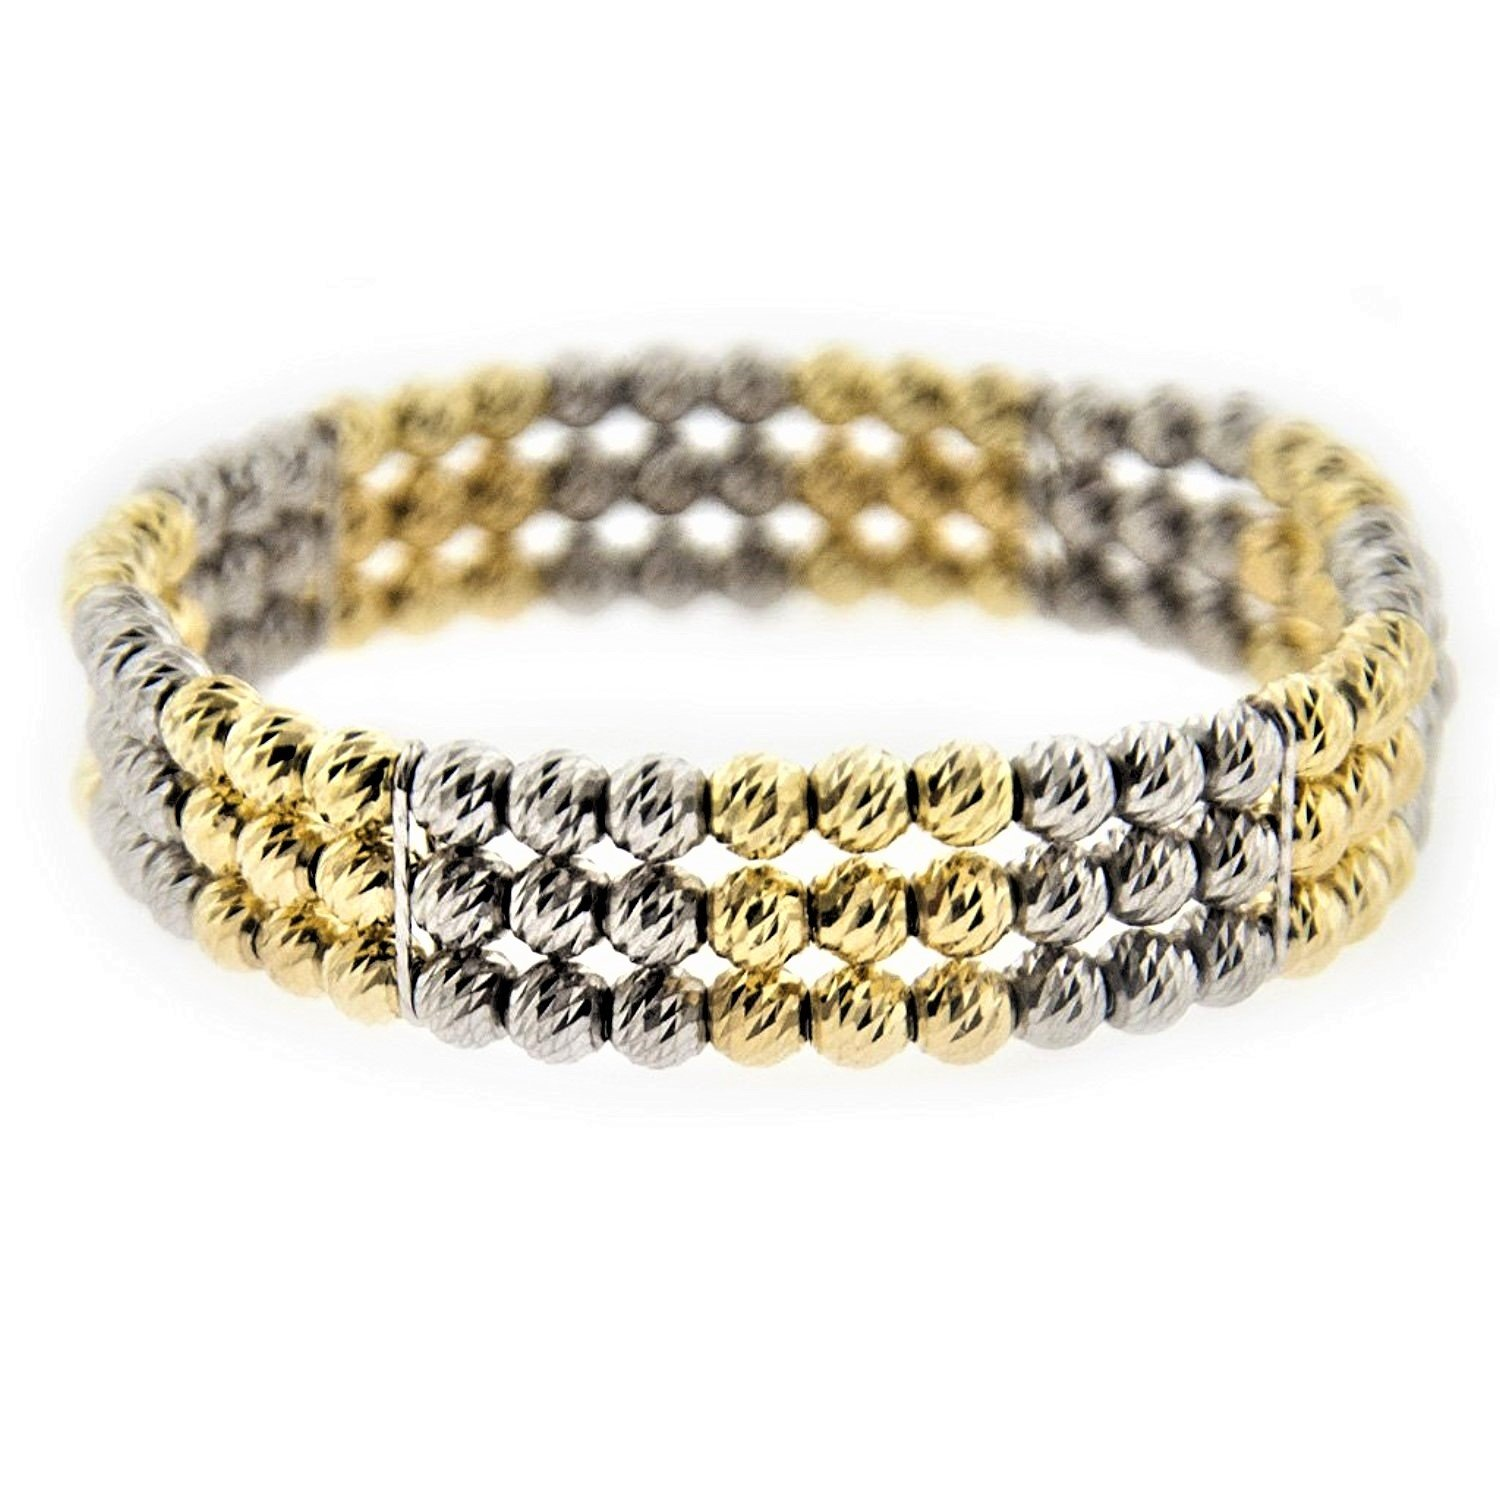 MCS Jewelry Sterling Silver Gold Plated 3 Row Diamond-Cut Beads Adjustable Stretch Bracelet (Fit 7'' to 8.5'' Wrist) by MCS Jewelry